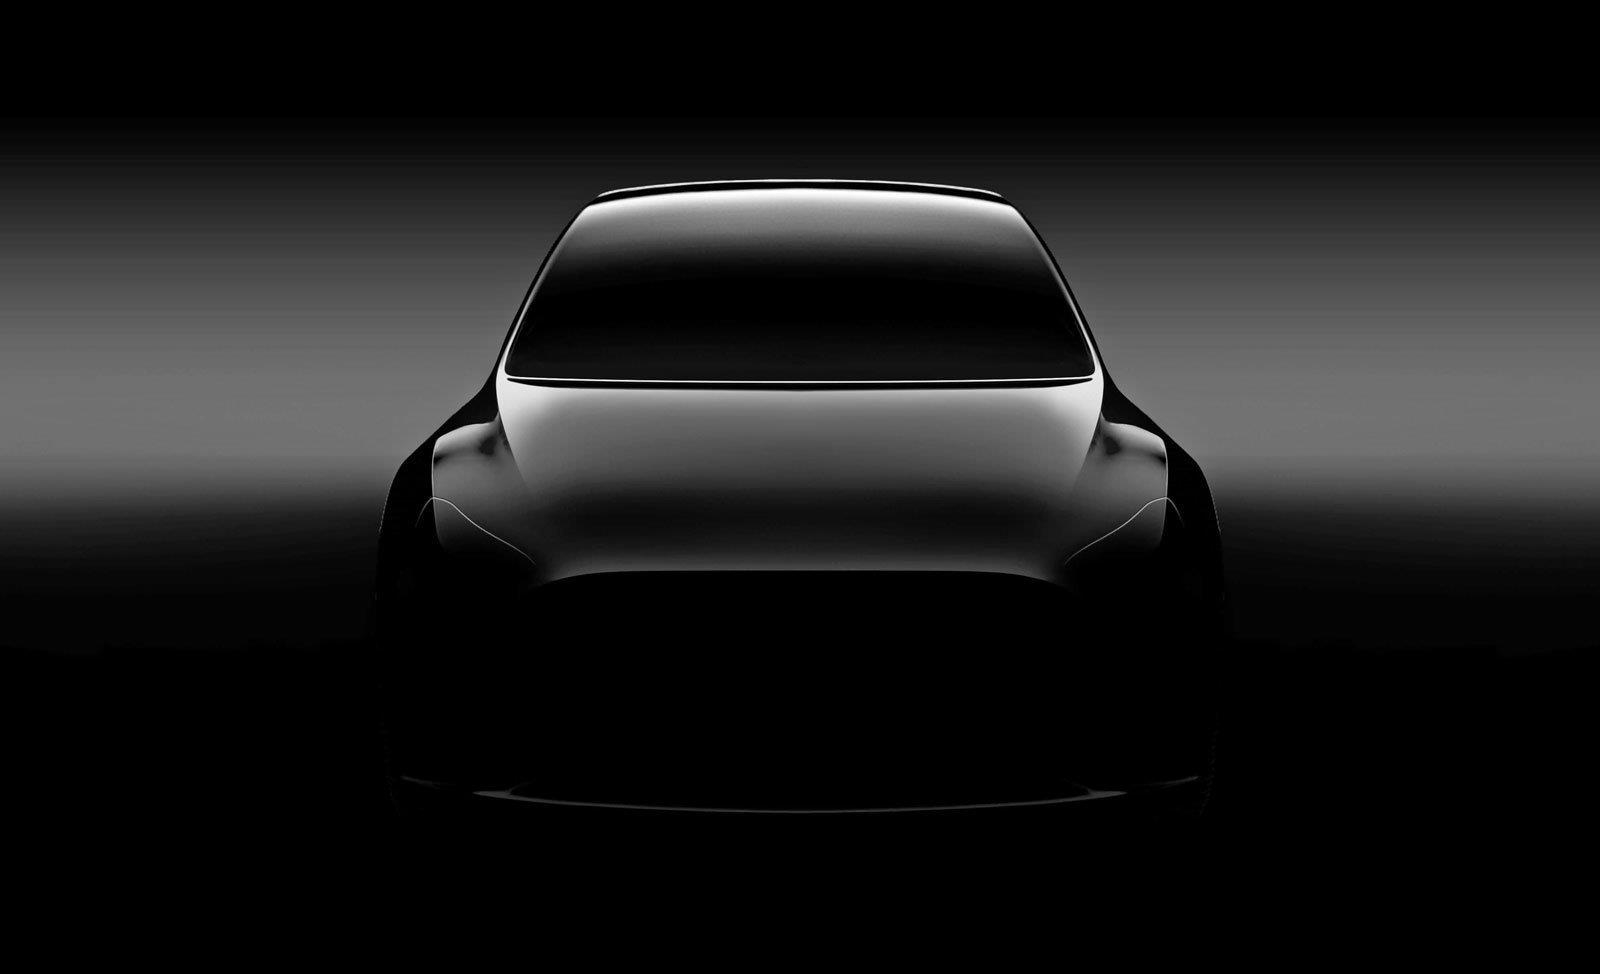 Tesla will unveil the Model Y crossover on March 14th | DeviceDaily.com